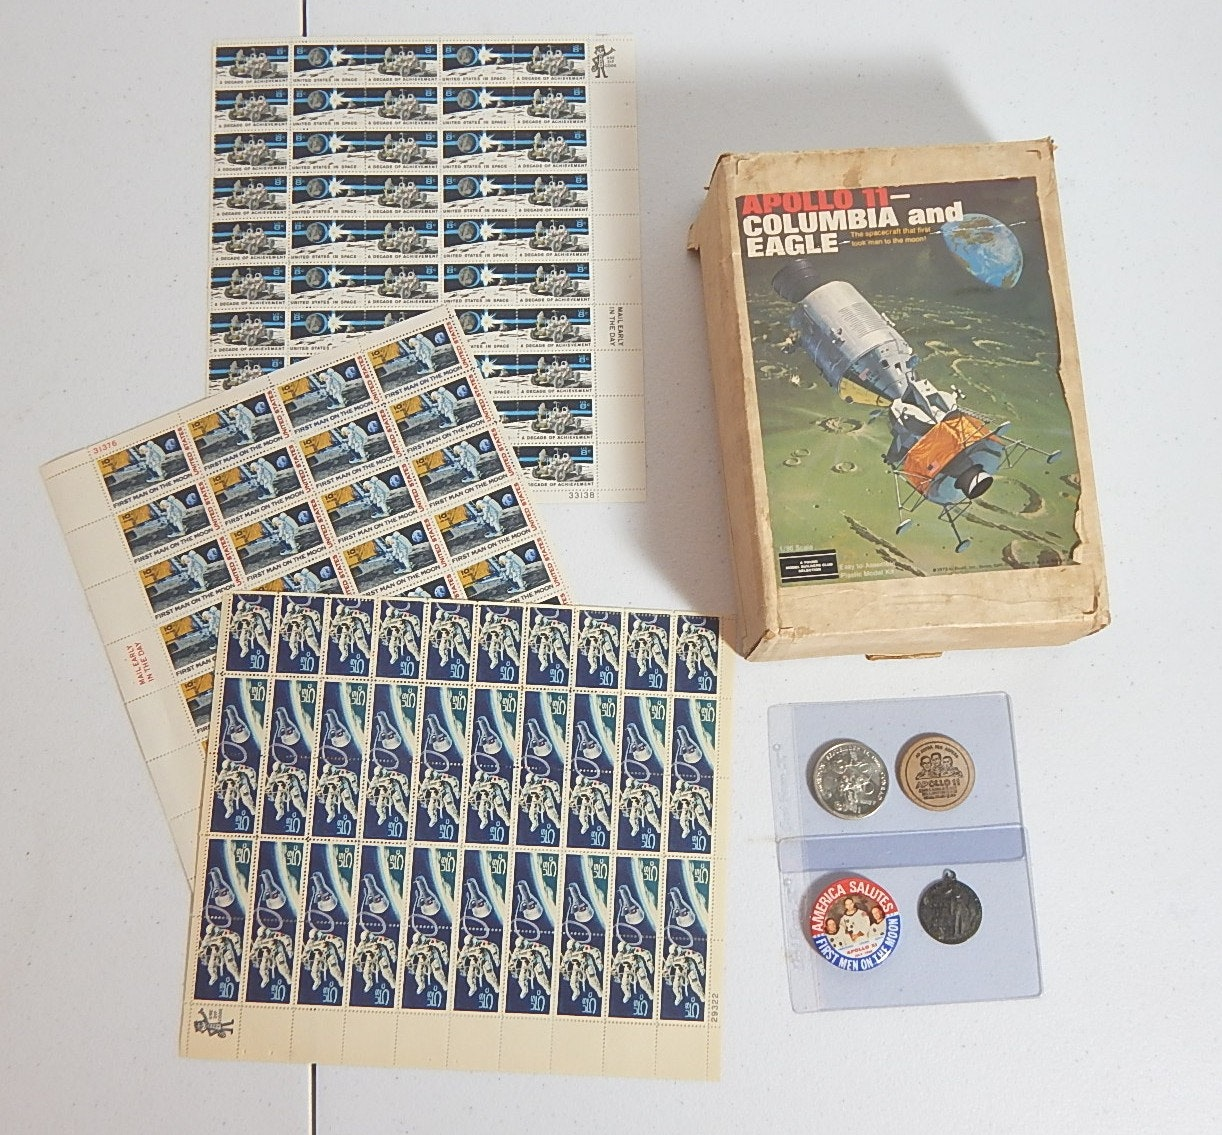 Space and Aeronatical Related Collectibles with Stamps and Model